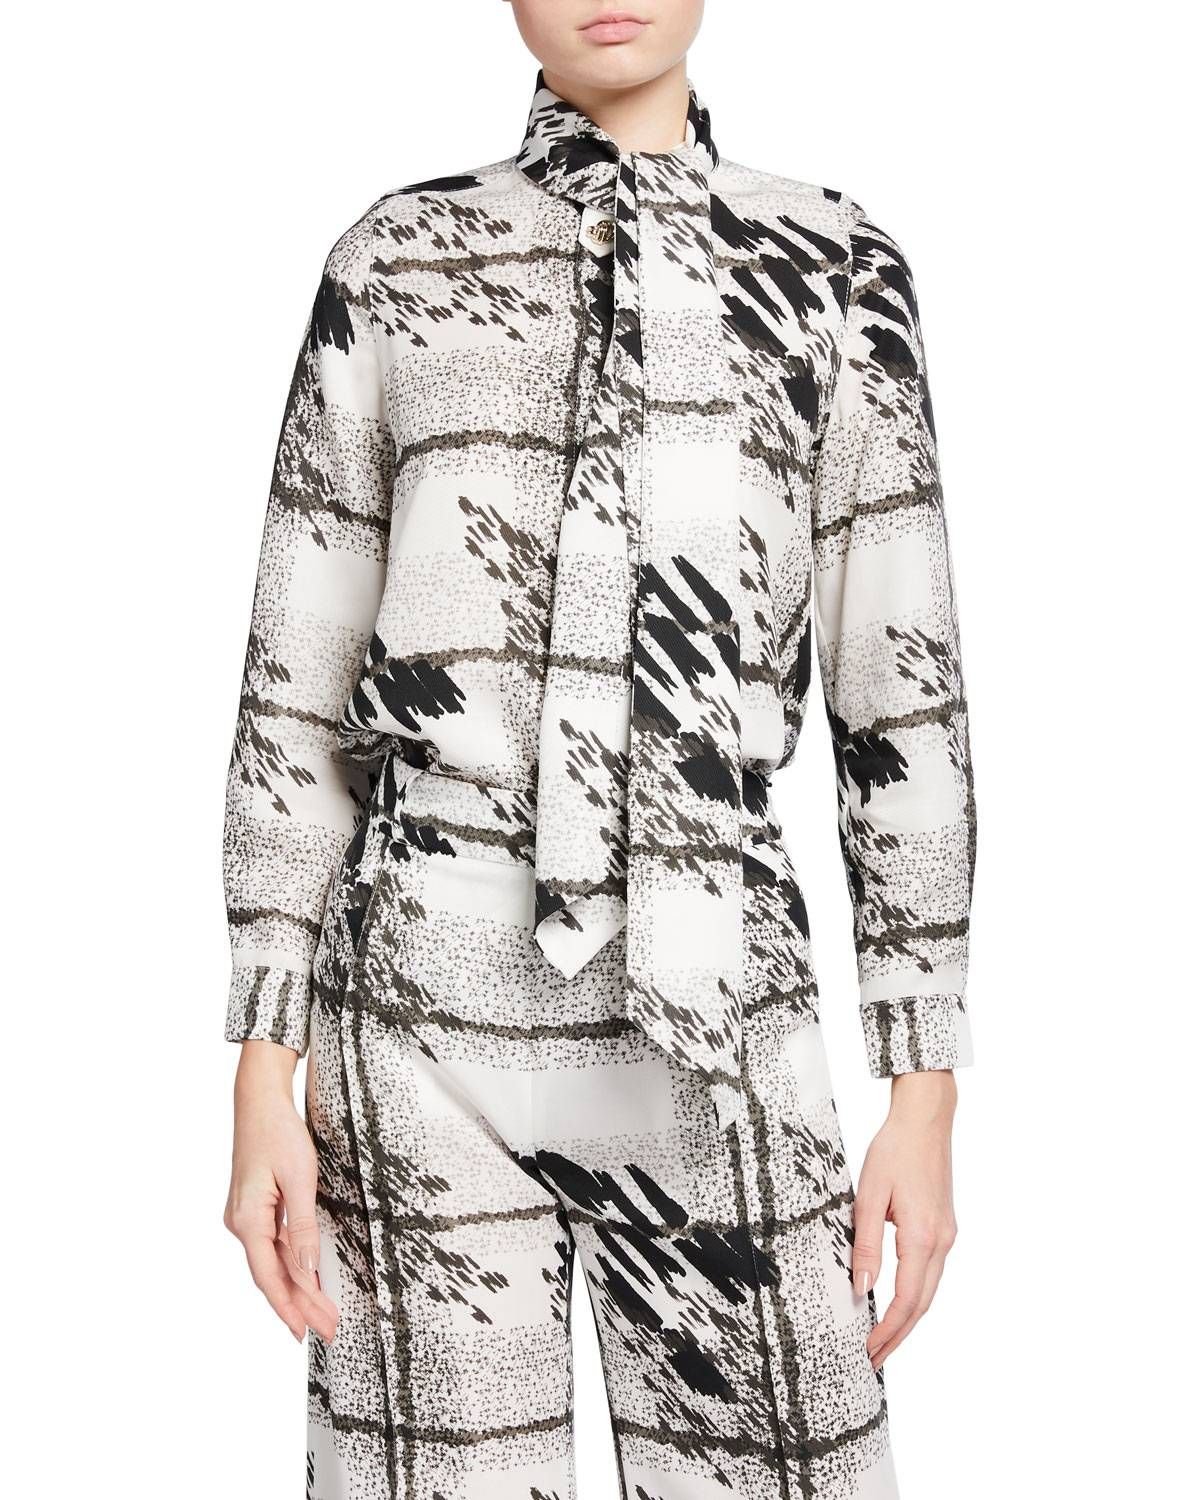 Pearl Printed Blouse with Neck Scarf - Size: 12 UK (8 US)